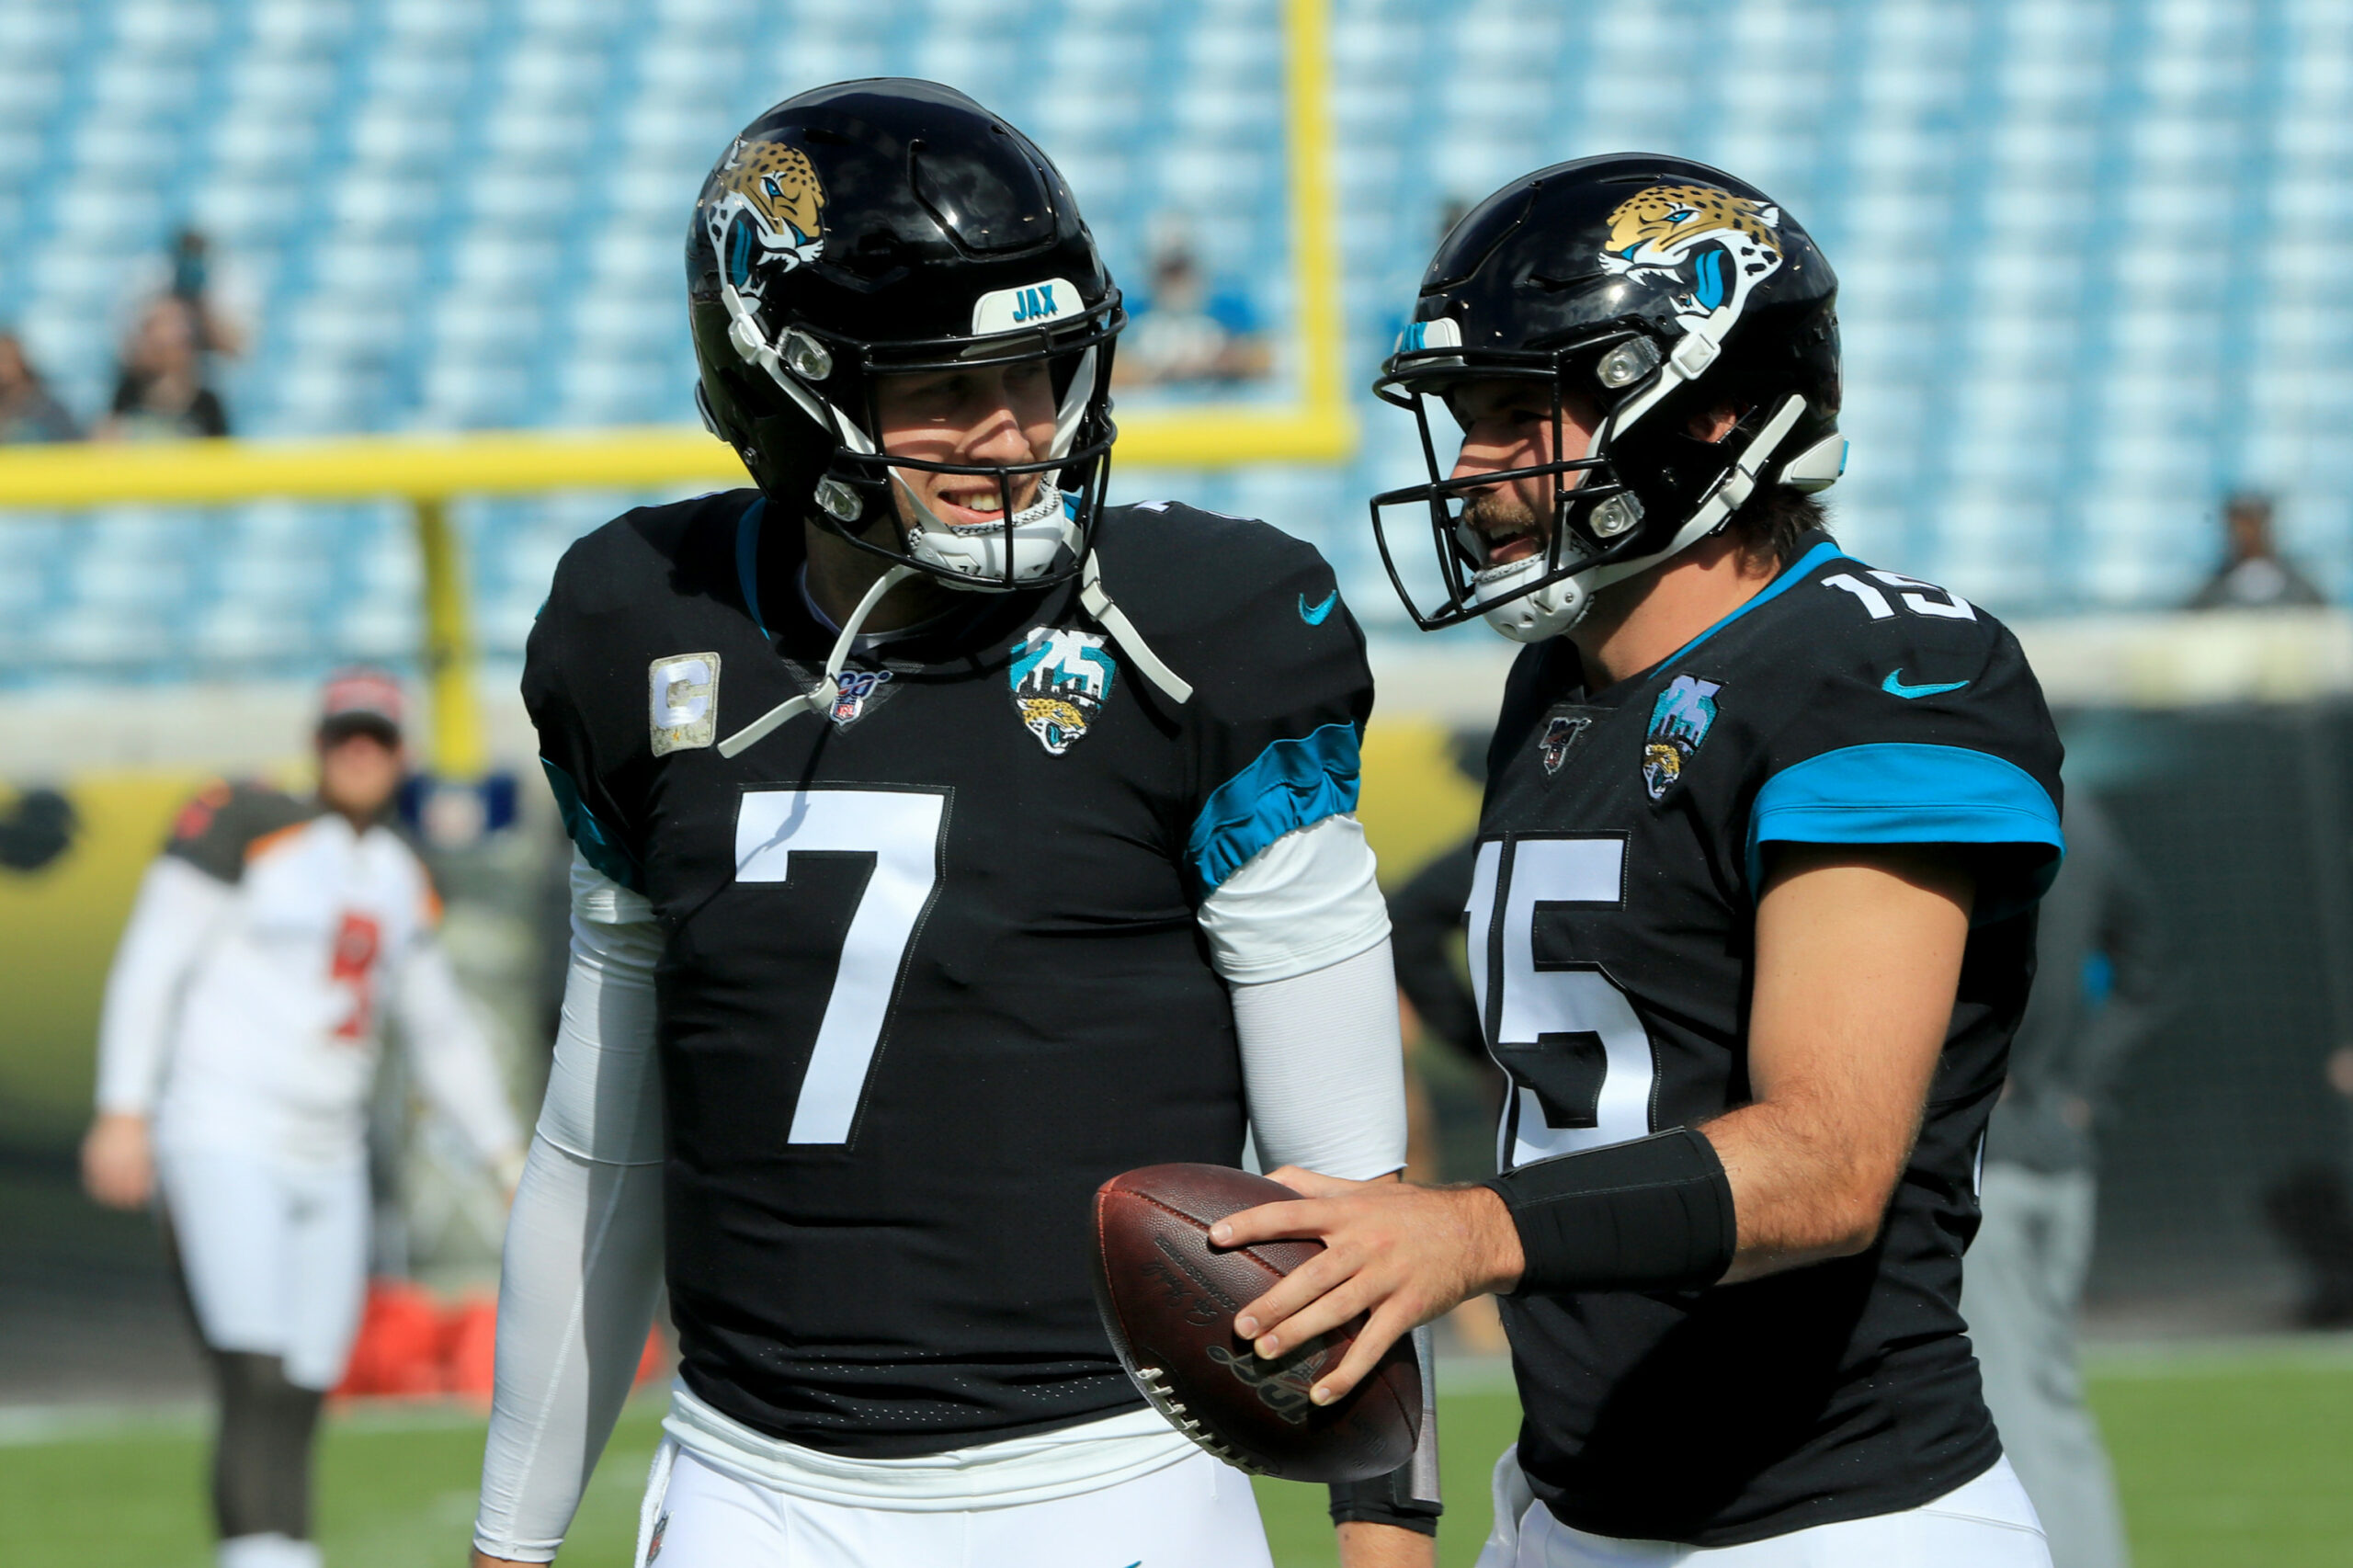 The Jaguars may look for an additional quarterback for the 11 season - jaguars quarterback 2020